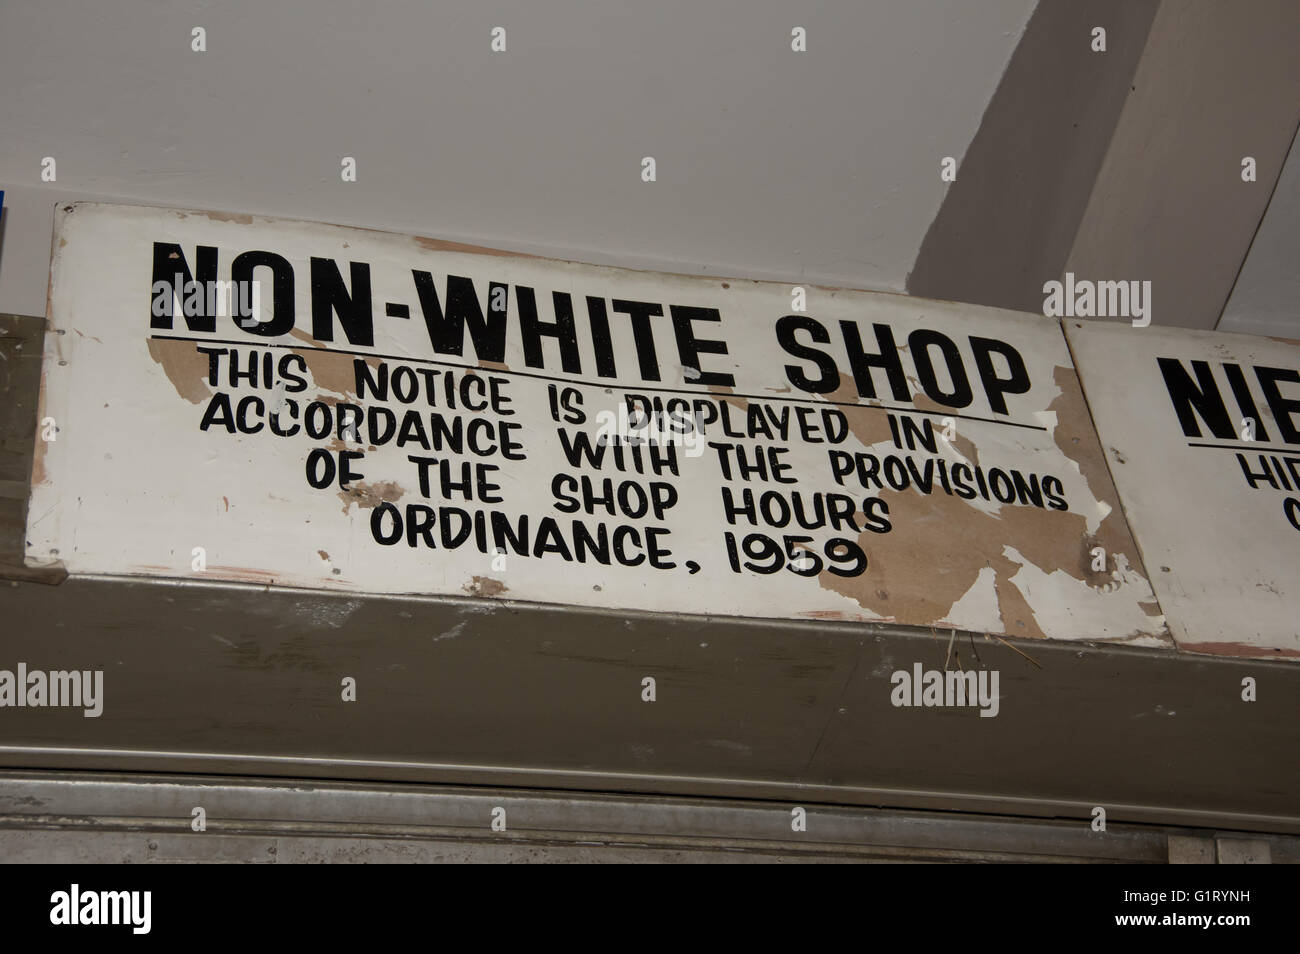 Johannesburg, South Africa 28 March 2016  One of the last Apartheid signs in the business district of Johannesburg - Stock Image